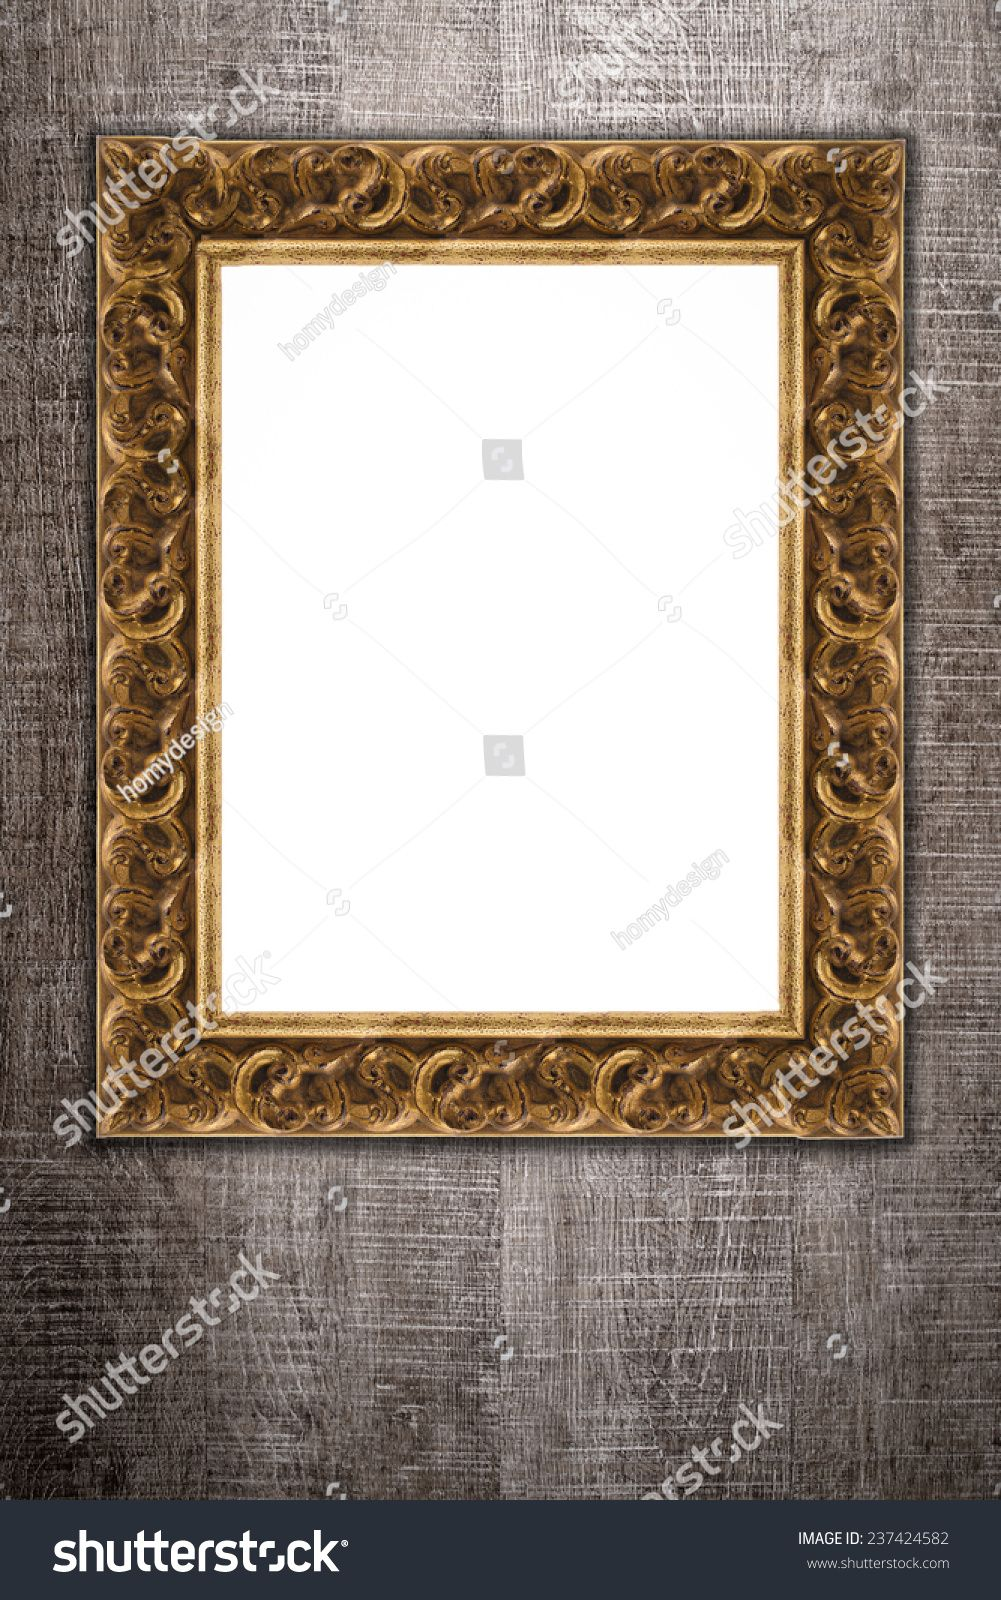 Old Picture Frame On Vintage Wood Wall Ad Sponsored Frame Picture Vintage Wall In 2020 Old Picture Frames Frame Picture Frames